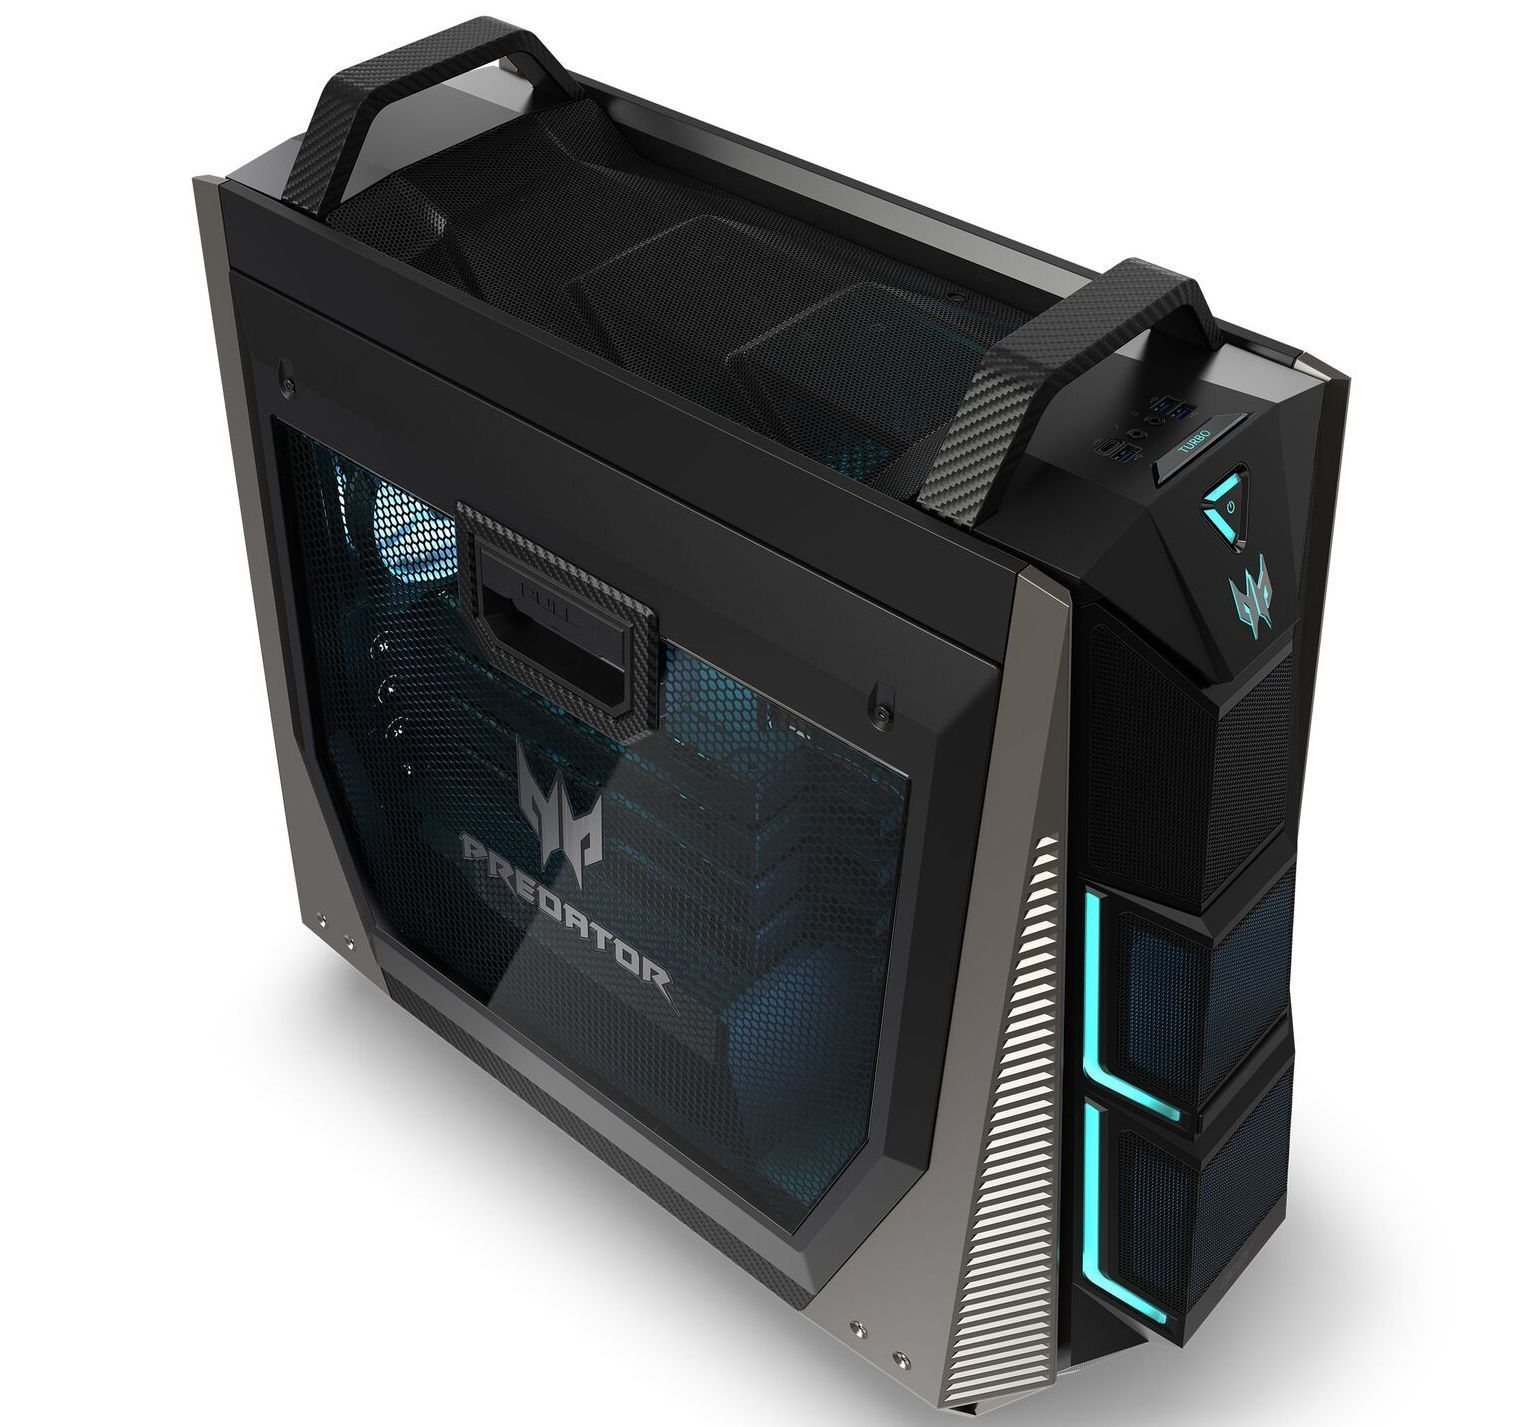 Acer announces new Predator products at IFA, including its 18-core gaming desktop